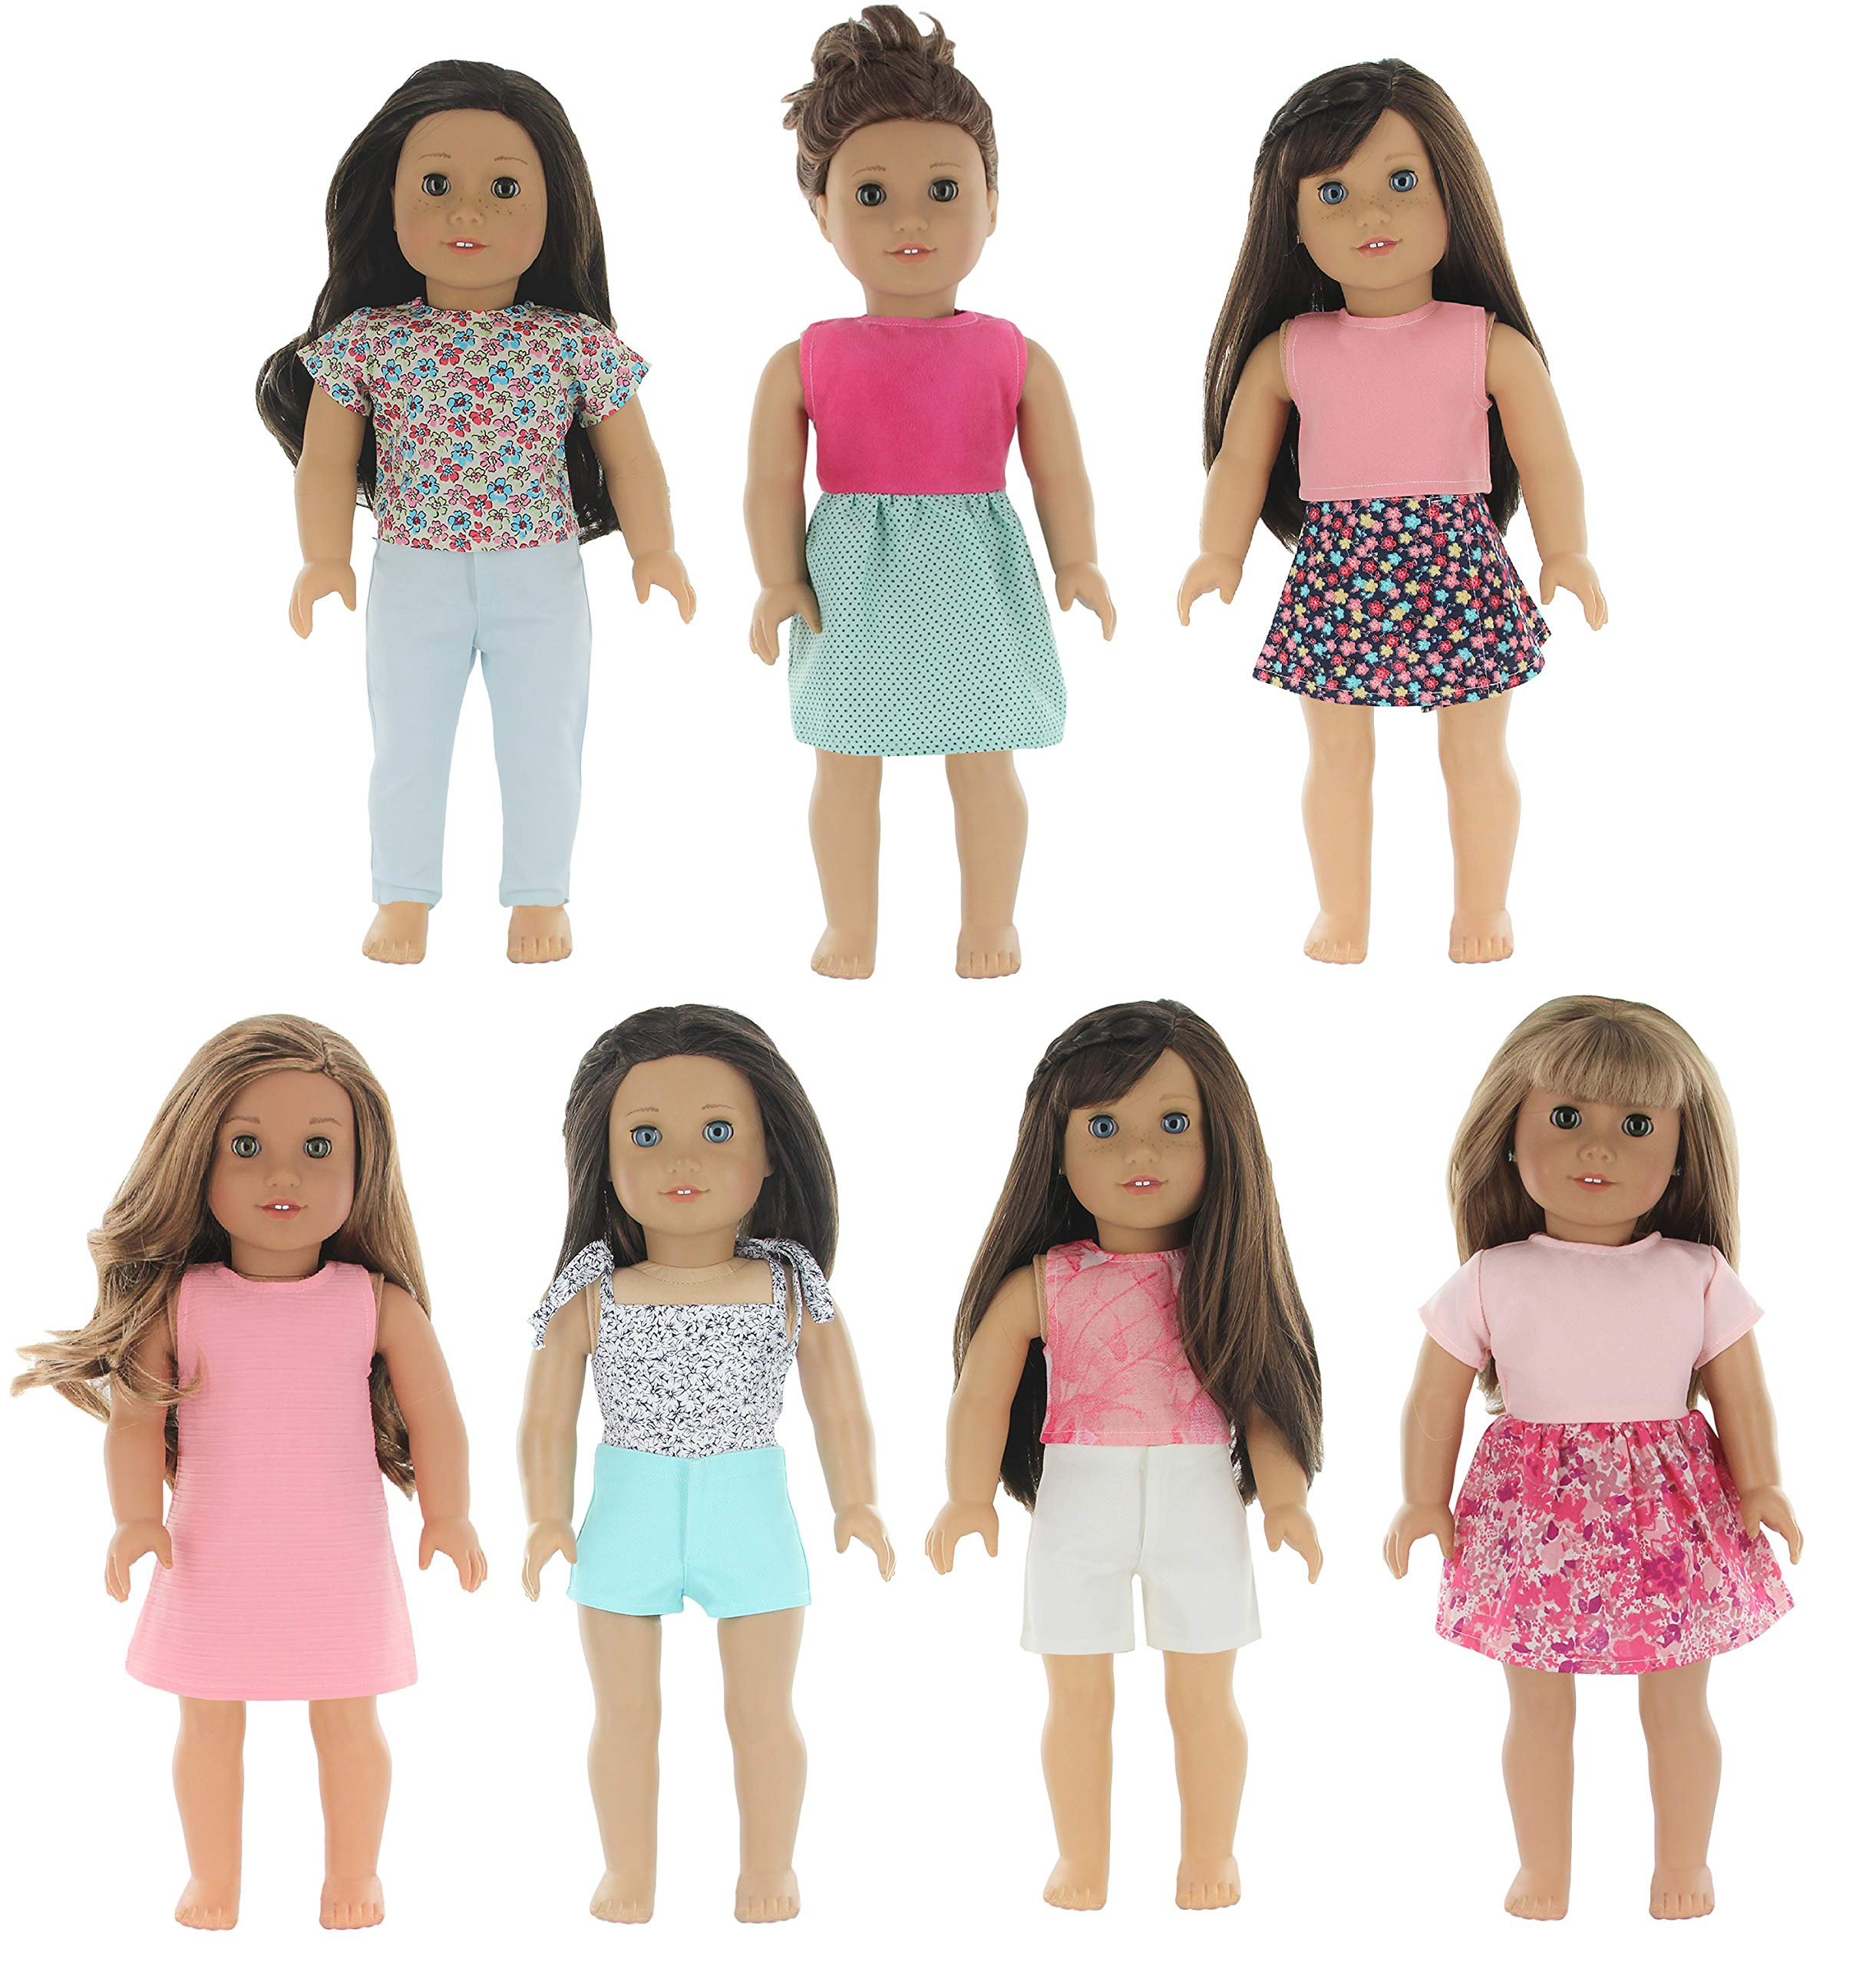 PZAS Toys 7 Outfit Set, 18 Inch Doll Clothes, Compatible with American Girl Doll Clothes and Other 18 Inch Doll Clothes